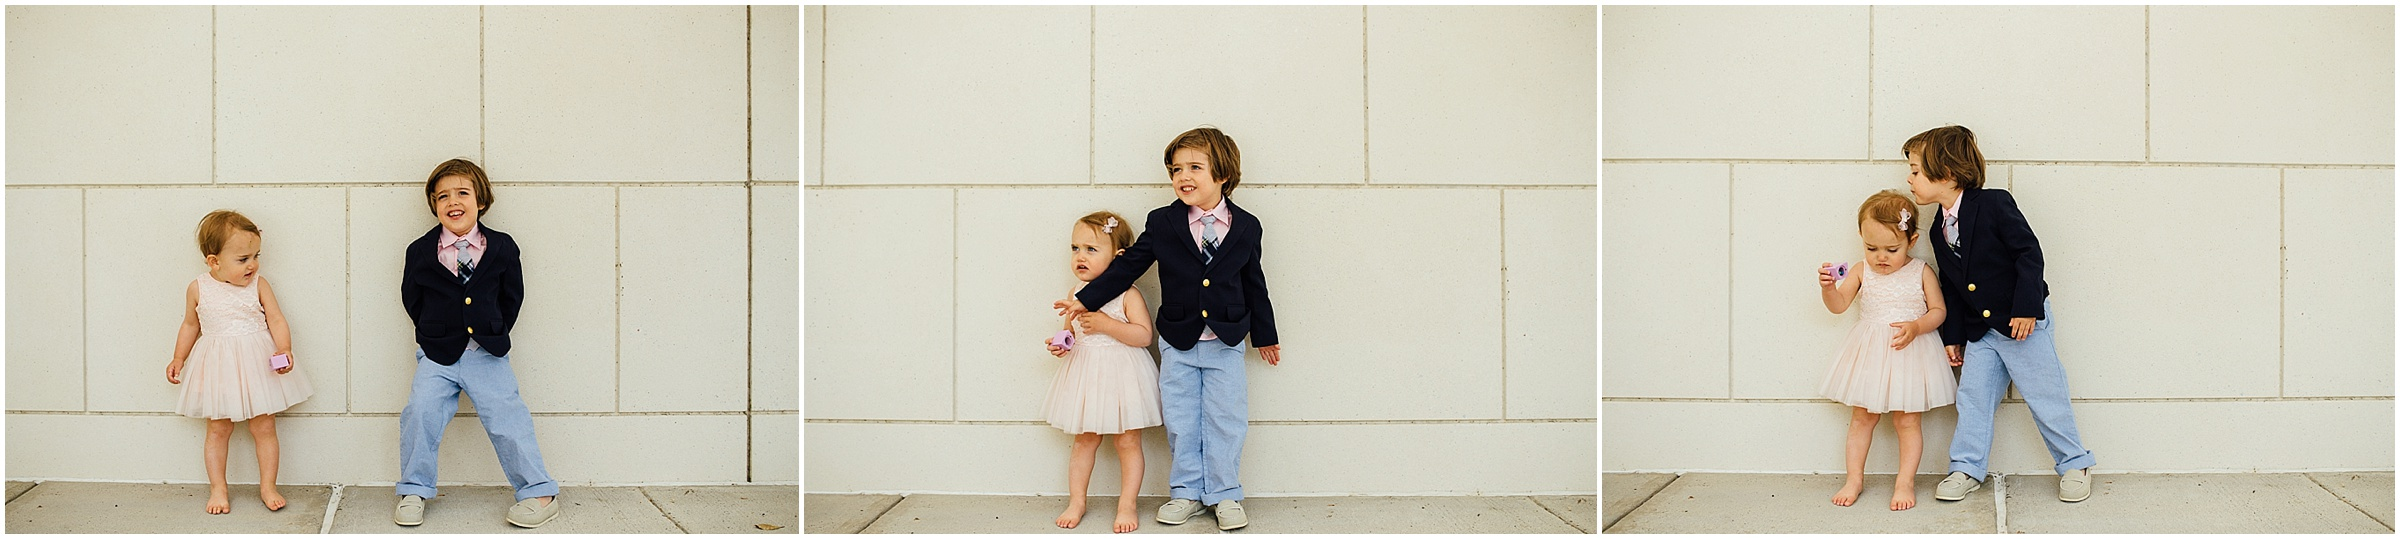 lifestyle family photography by Emily Lapish Photography in Chattanooga TN_0025